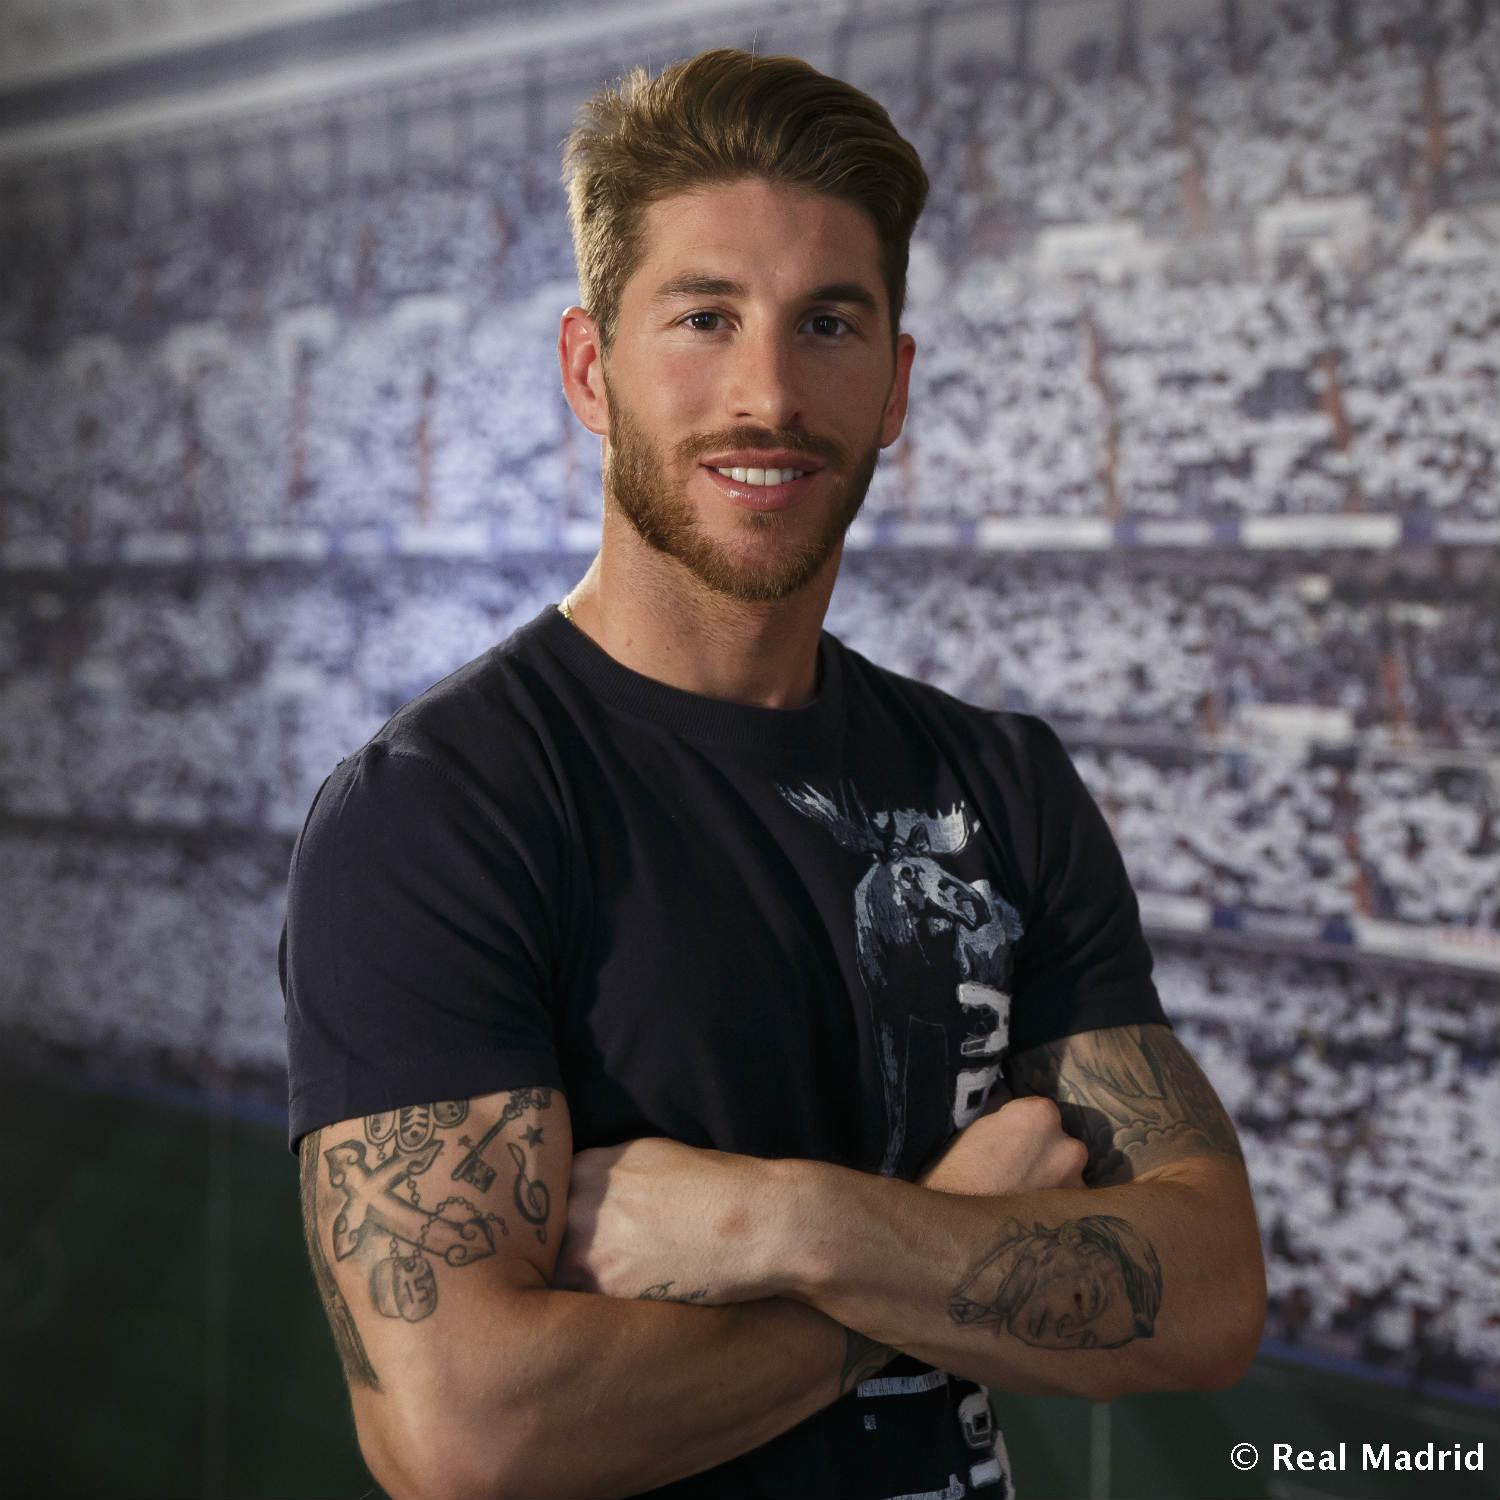 Real Madrid - Sergio Ramos - 27-01-2014